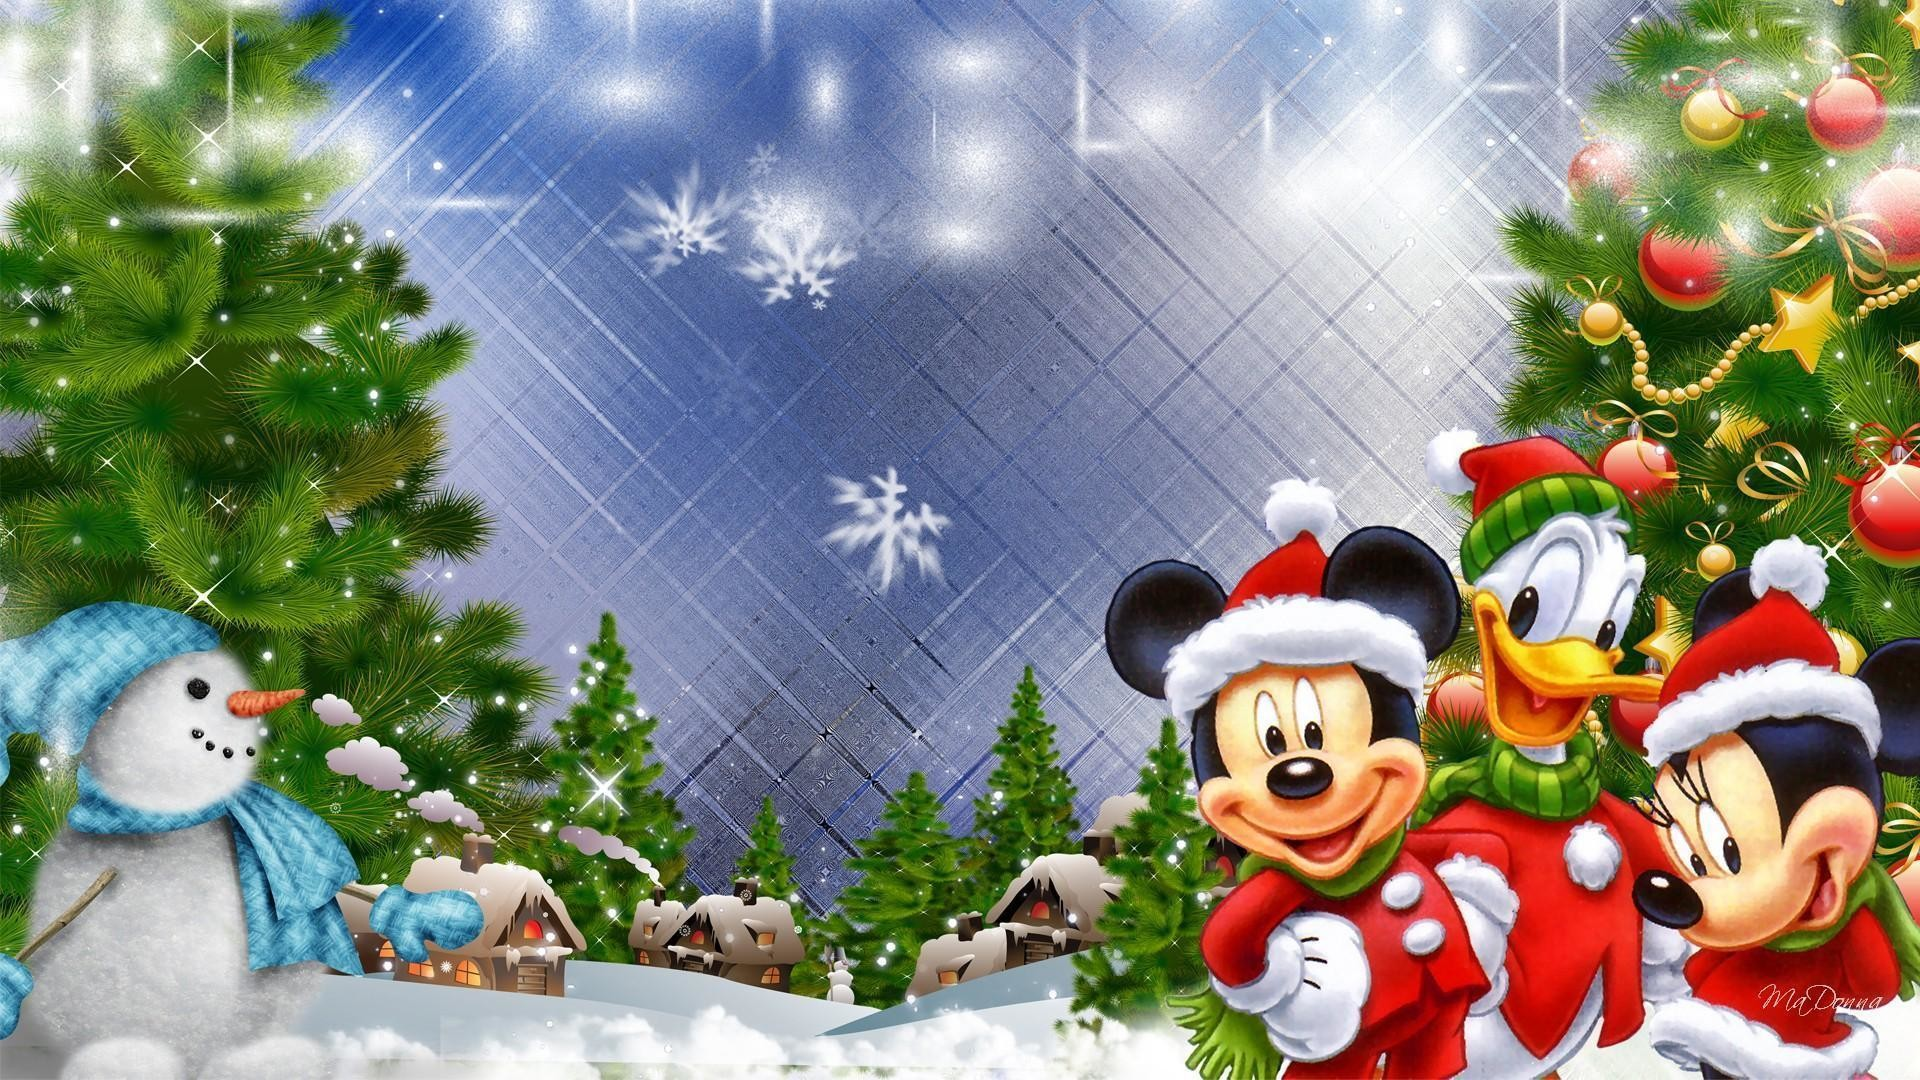 Xmas Stuff For > Merry Christmas Mickey Mouse Wallpaper